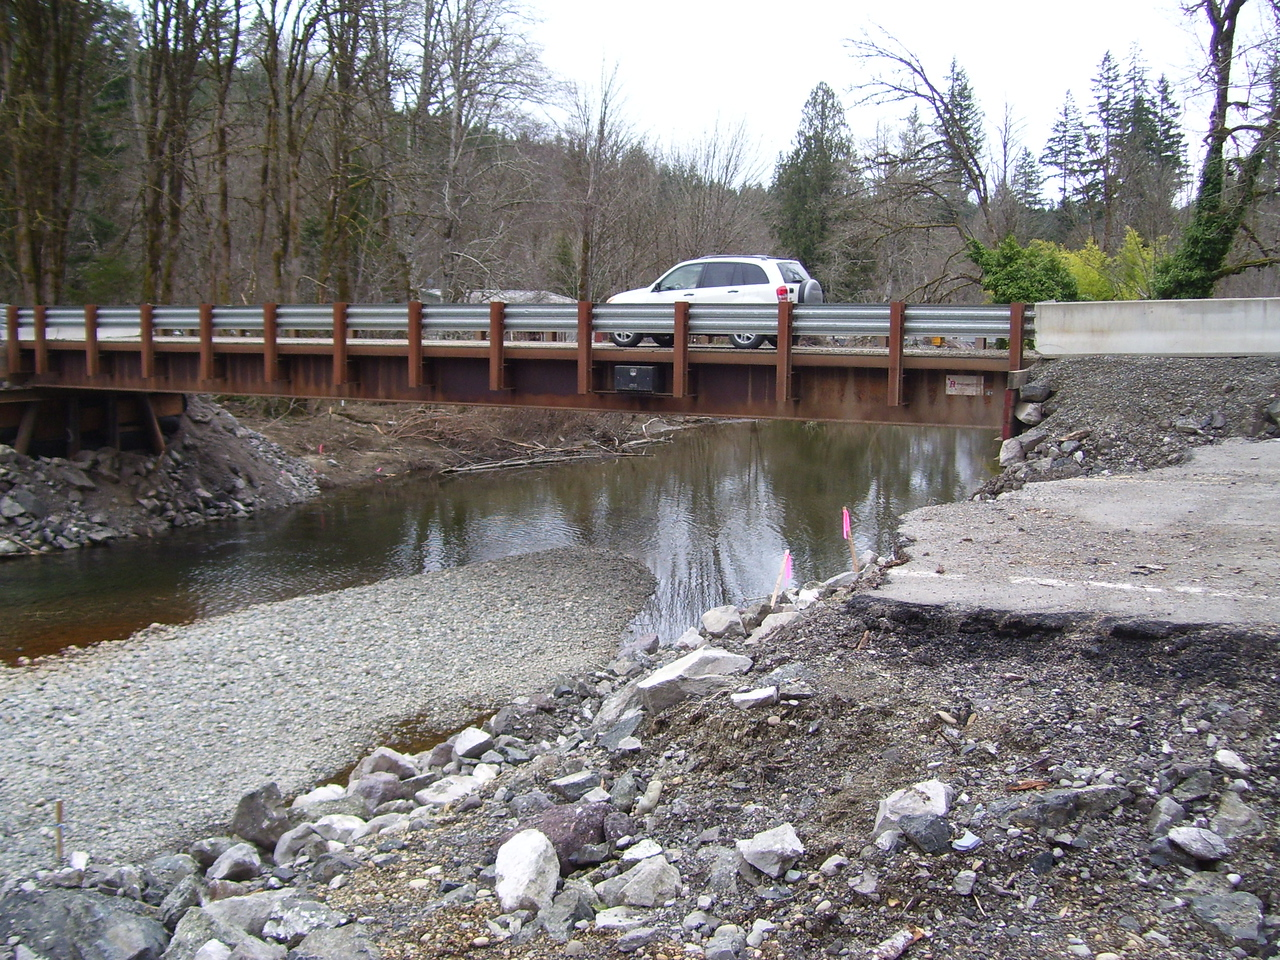 The temporary bridge replacing the washed out one on the Tahuya - Belfair Rd.